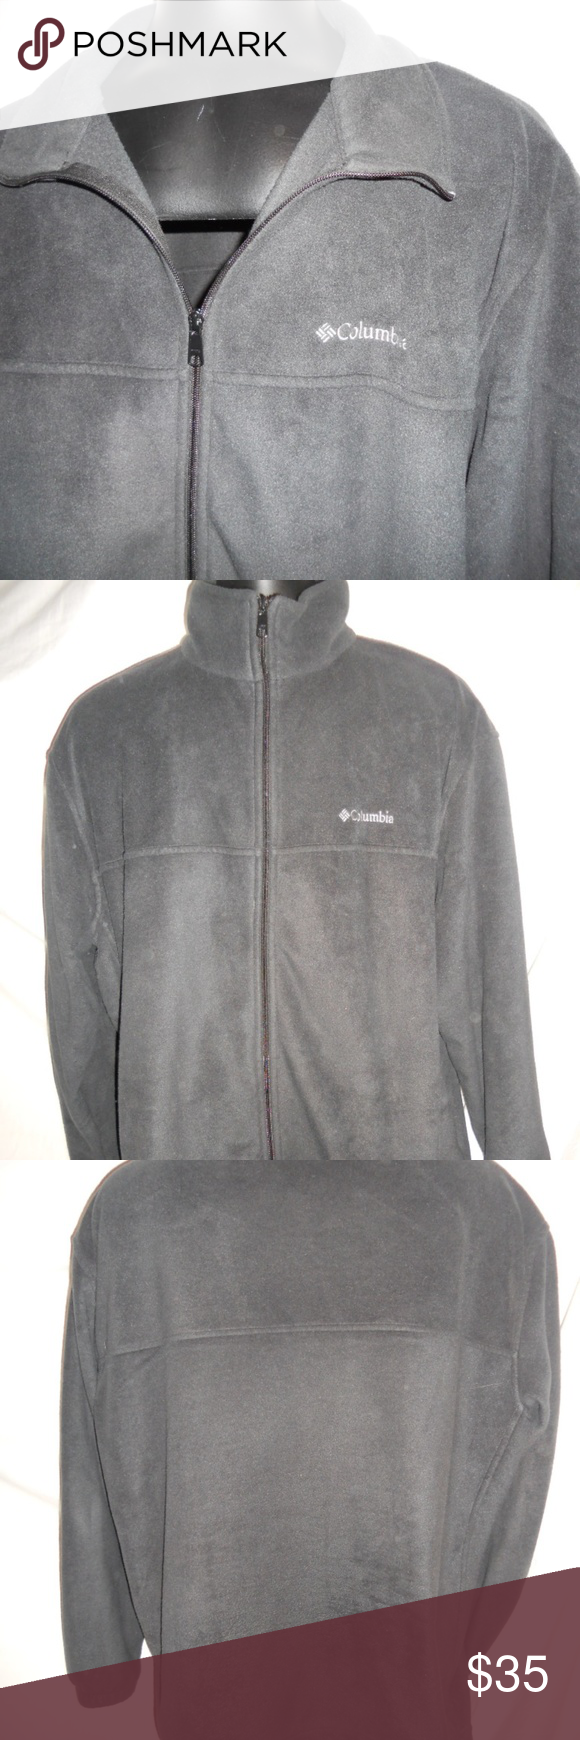 10eb0ebab71 Mens Columbia Black Fleece Jacket Coat Big 3XL Mens Columbia Black Fleece  Jacket Coat Big 3XL. Jacket is in excellent condition and ready for a new  home.